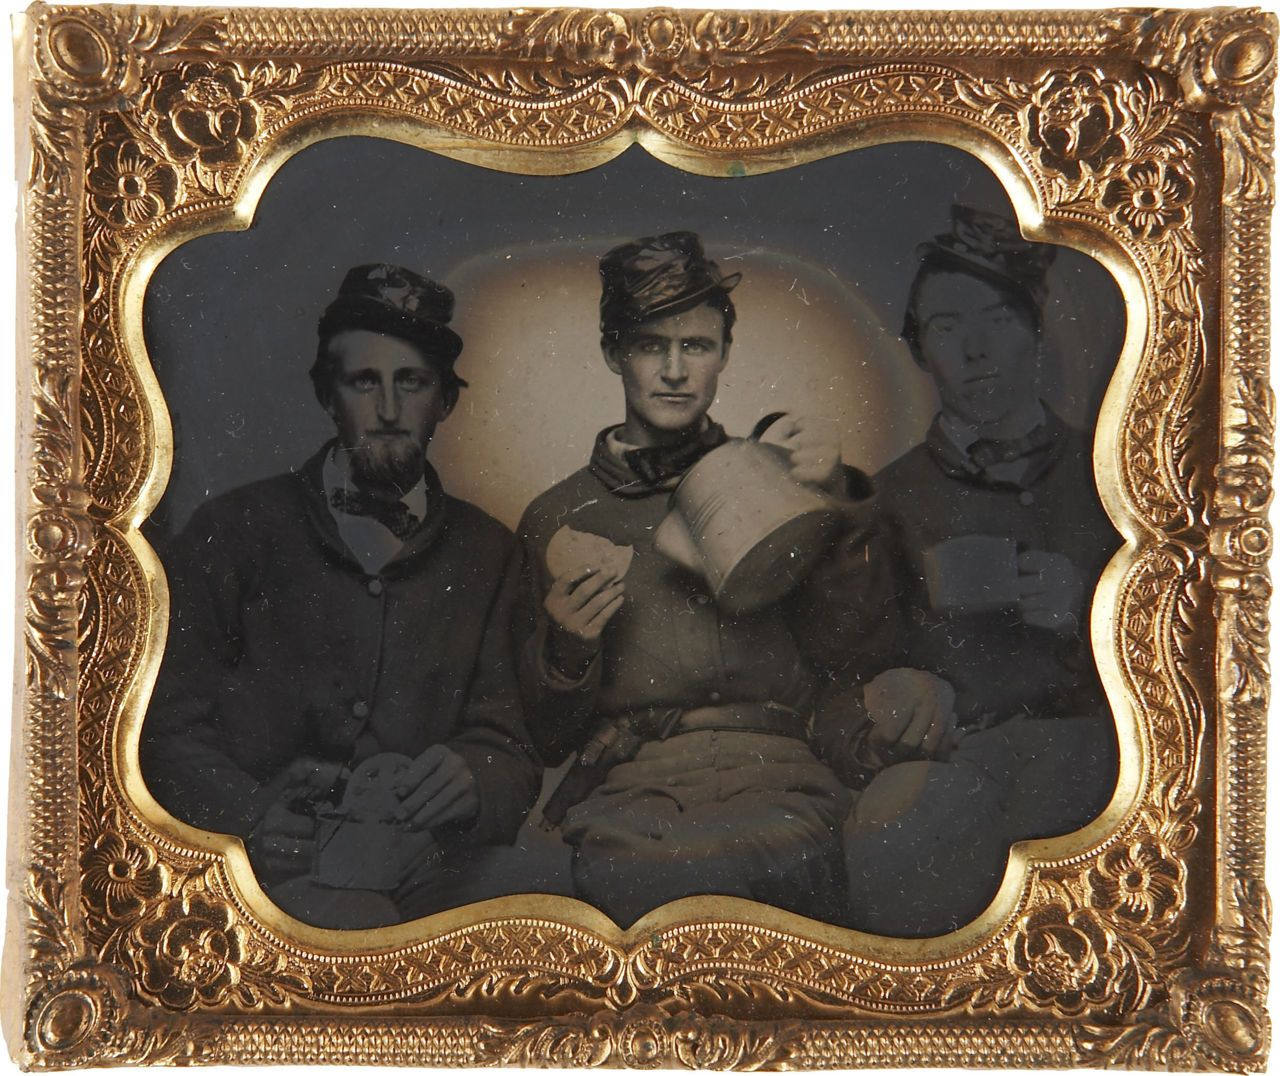 Tintype portrait of three federal soldiers enjoying hardtack and coffee